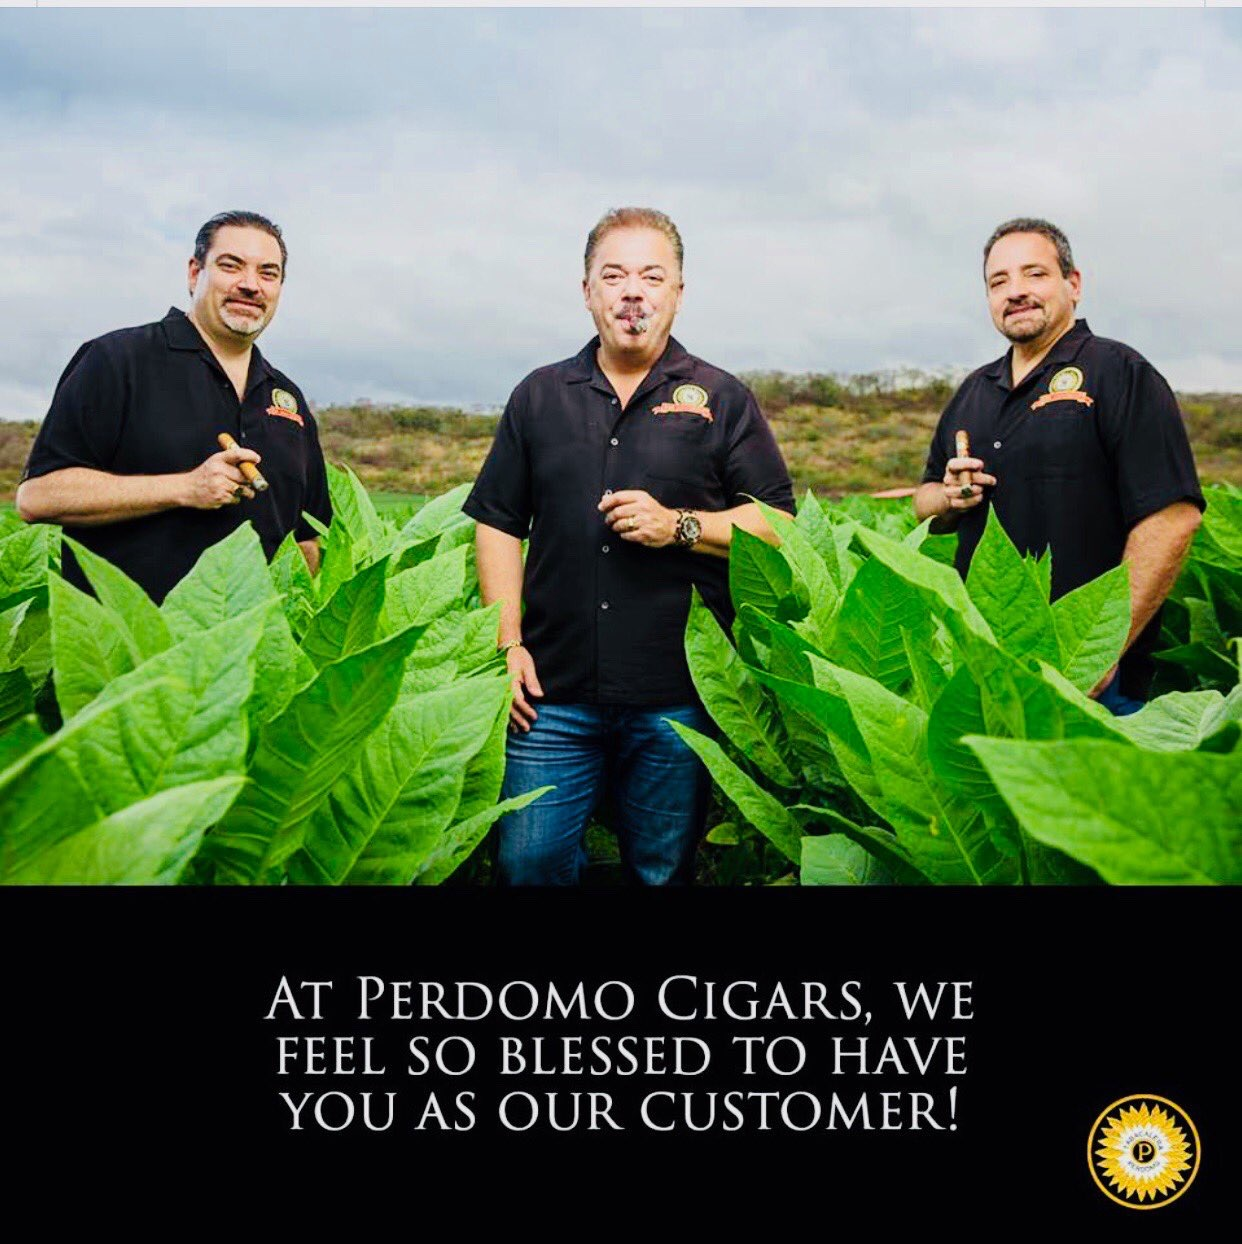 Perdomo Lot 23 Seleccion Perdomo - 12 Cigar Sampler image